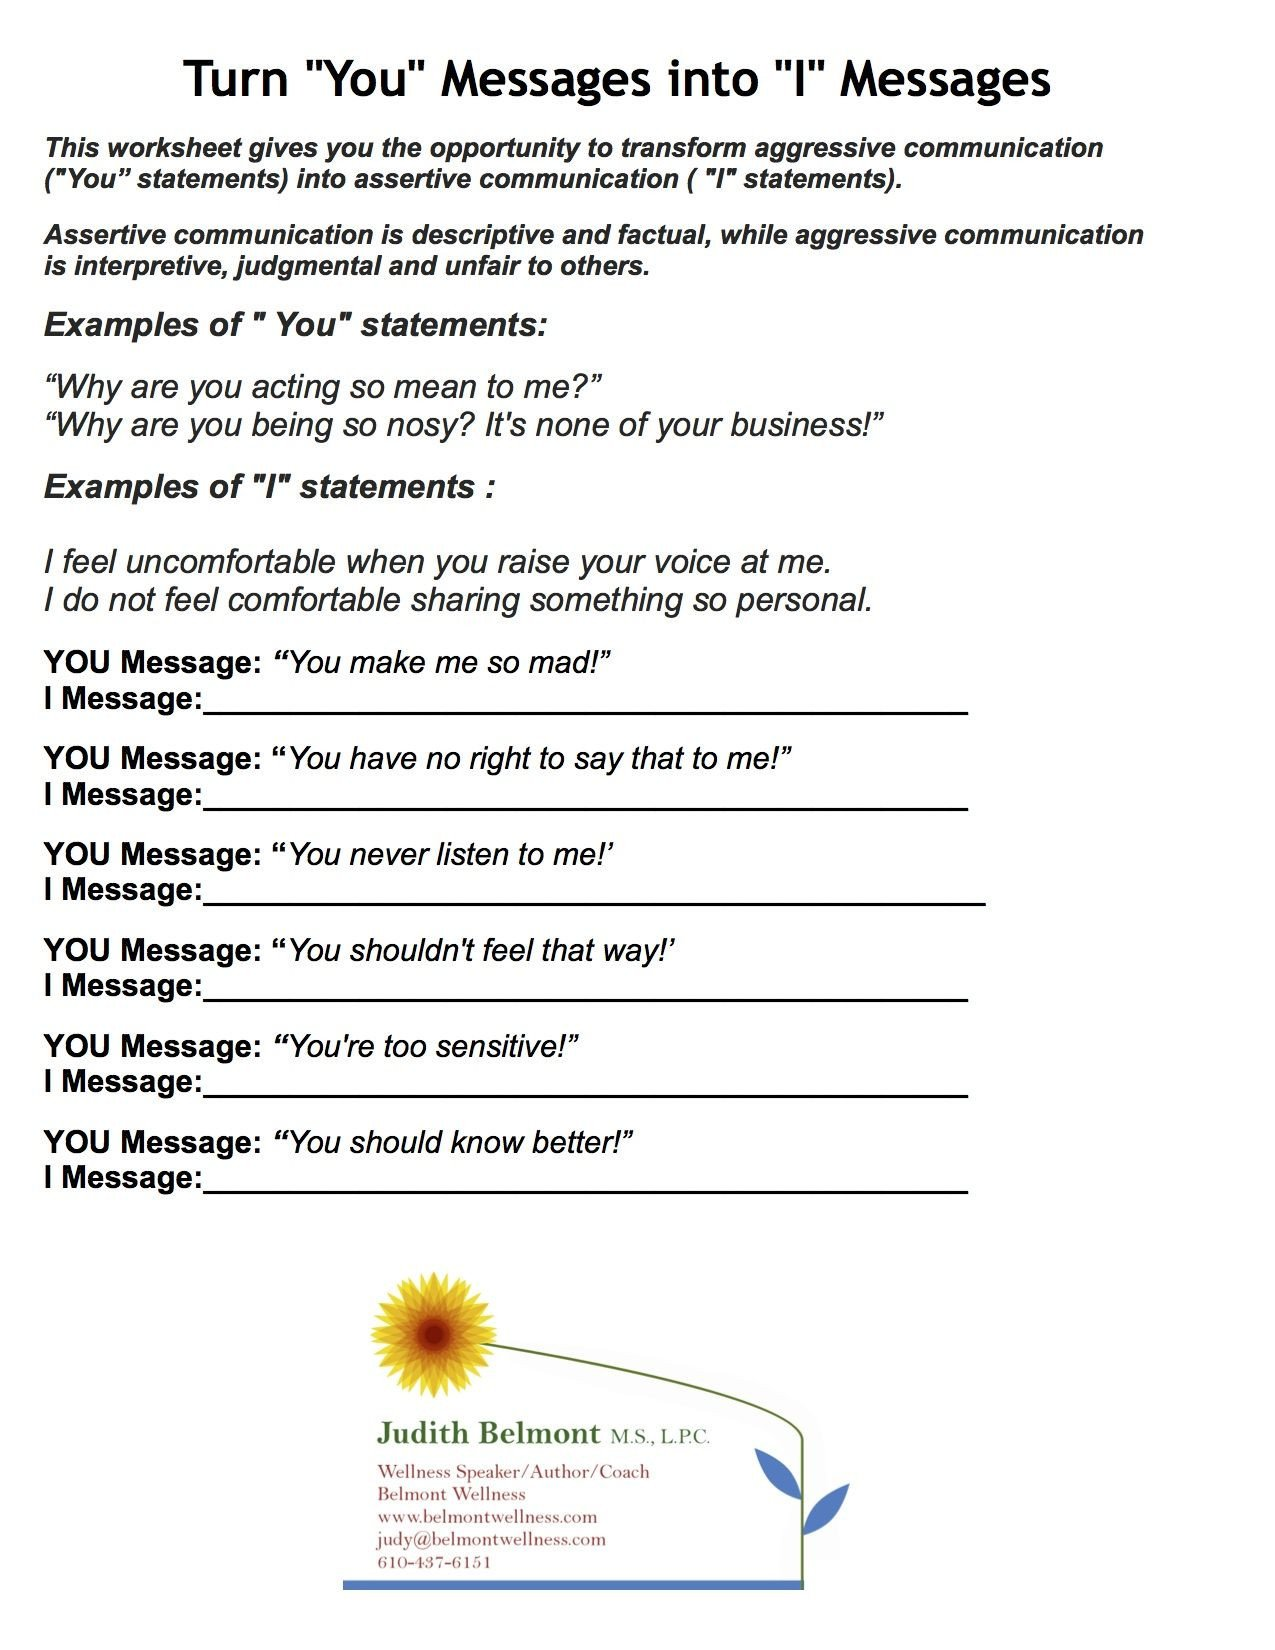 Communication Skills Worksheets for Adults Judy Belmont